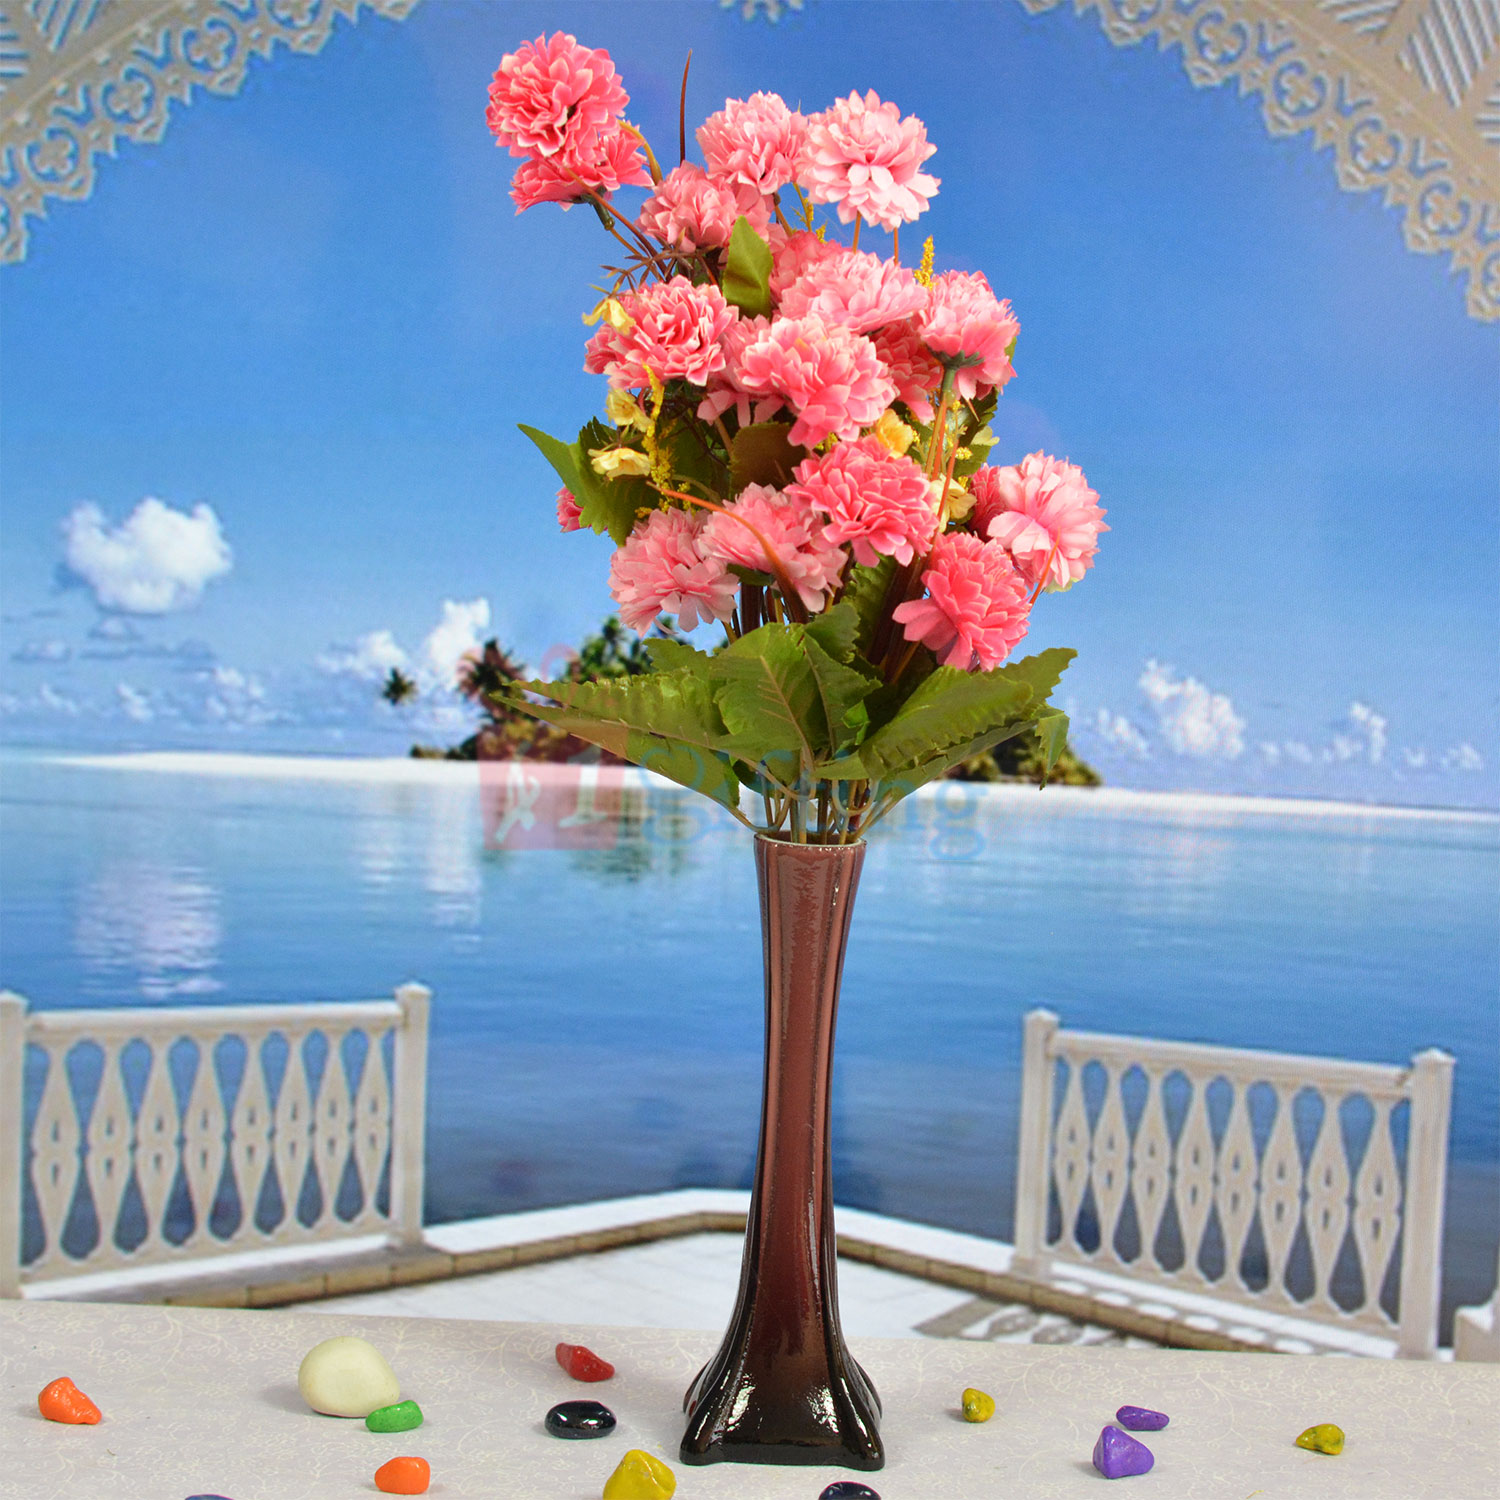 Unmatched Flower Pot with Beautiful Flowers